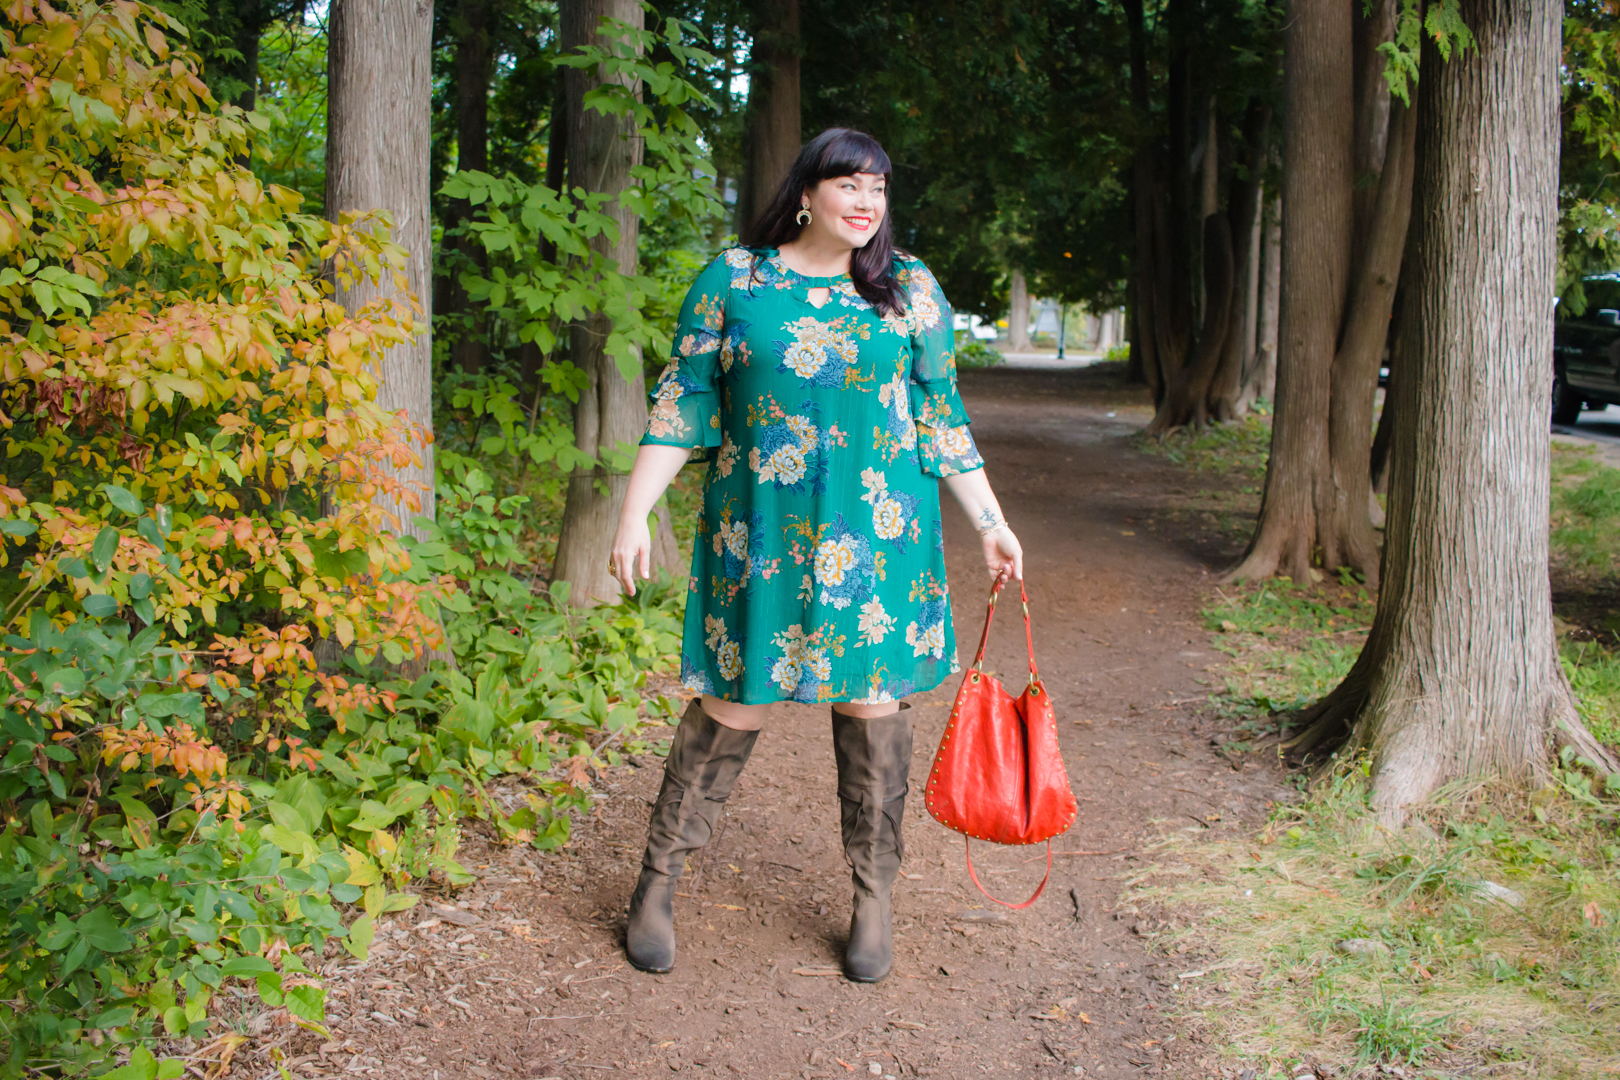 Avenue, Floral Dress, Plus Size OOTD, Fall Fashion, Plus Size Fashion Find, Plus Size Dress, Style Plus Curves, Chicago Blogger, Chicago Plus Size Blogger, Plus Size Blogger, Amber McCulloch